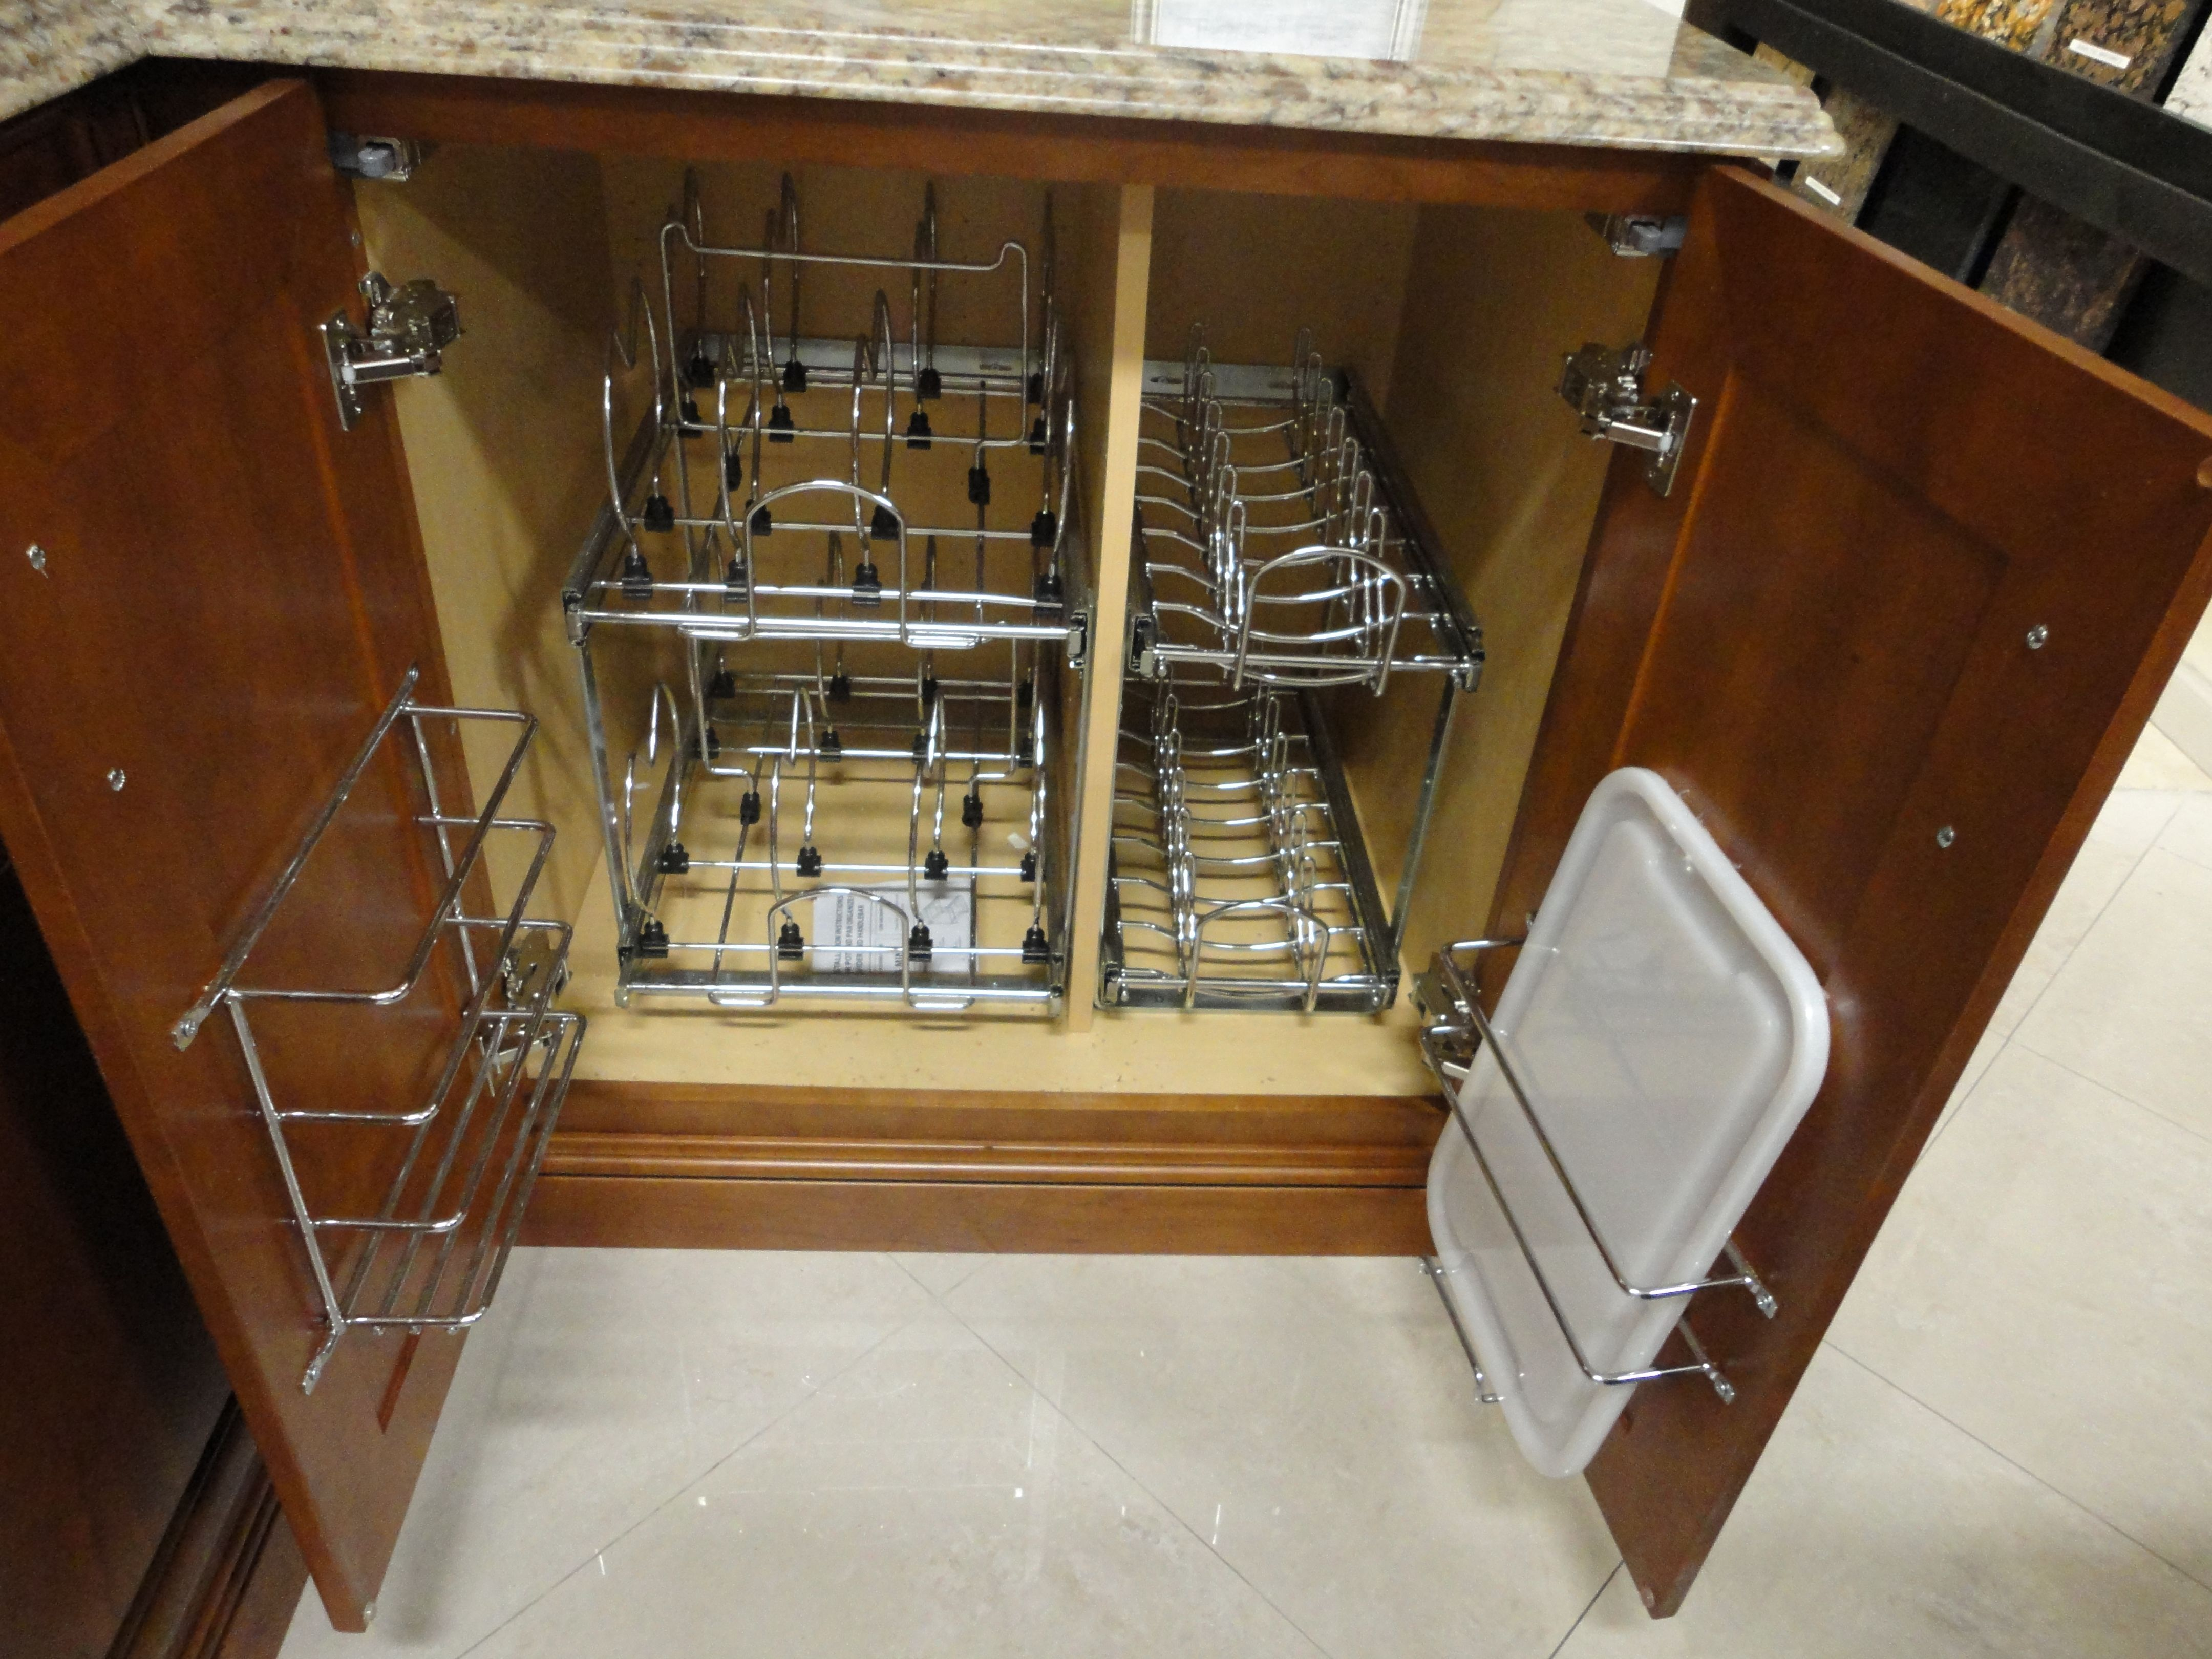 oval ikea crock fresh pots of pan rack hanging cabinet for pans photos drying kitchen and lid lovely racks lowes pot com wall